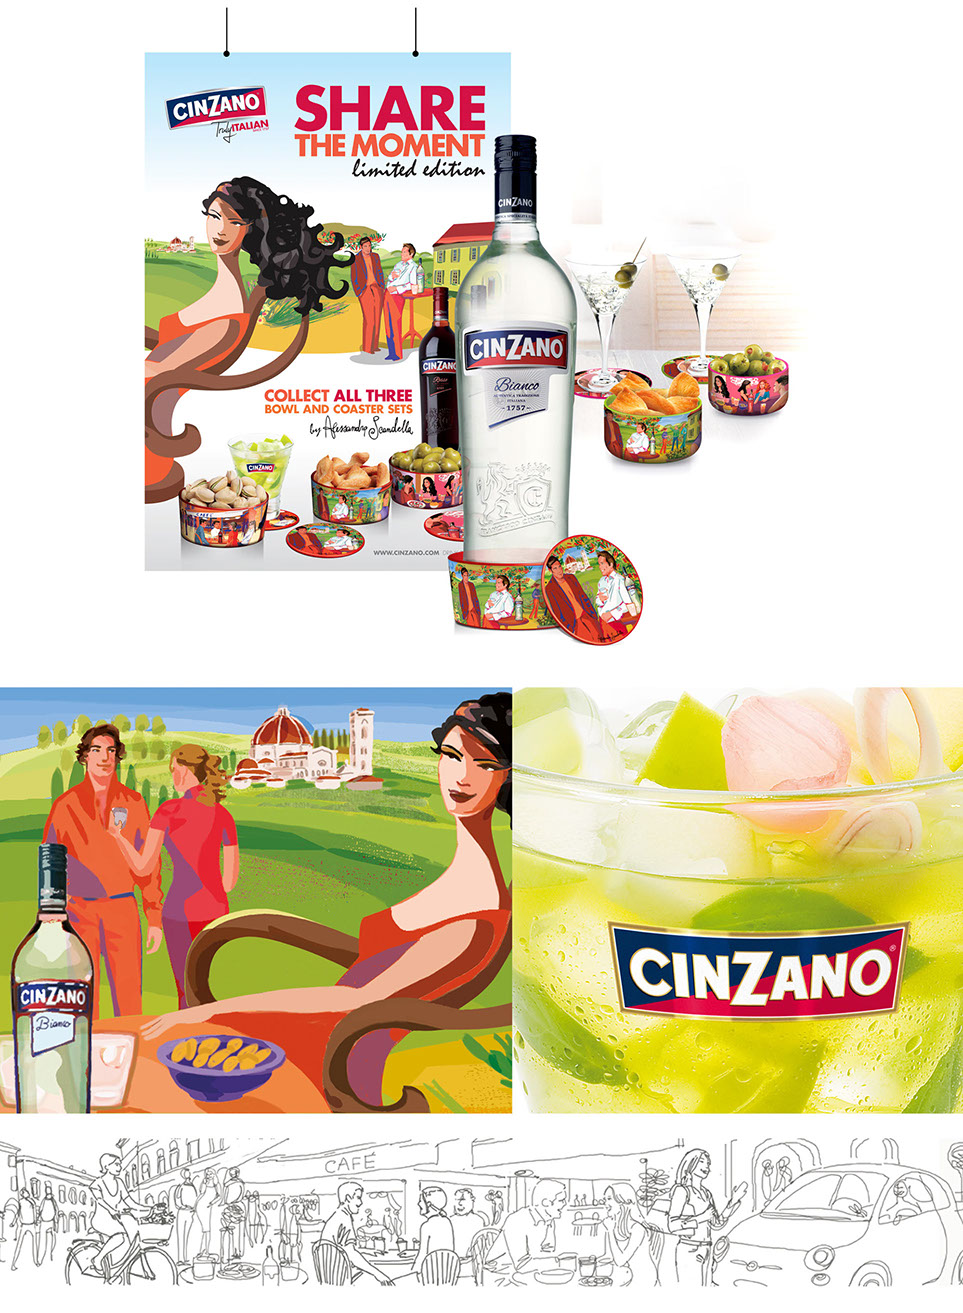 Cinzano share the Moment